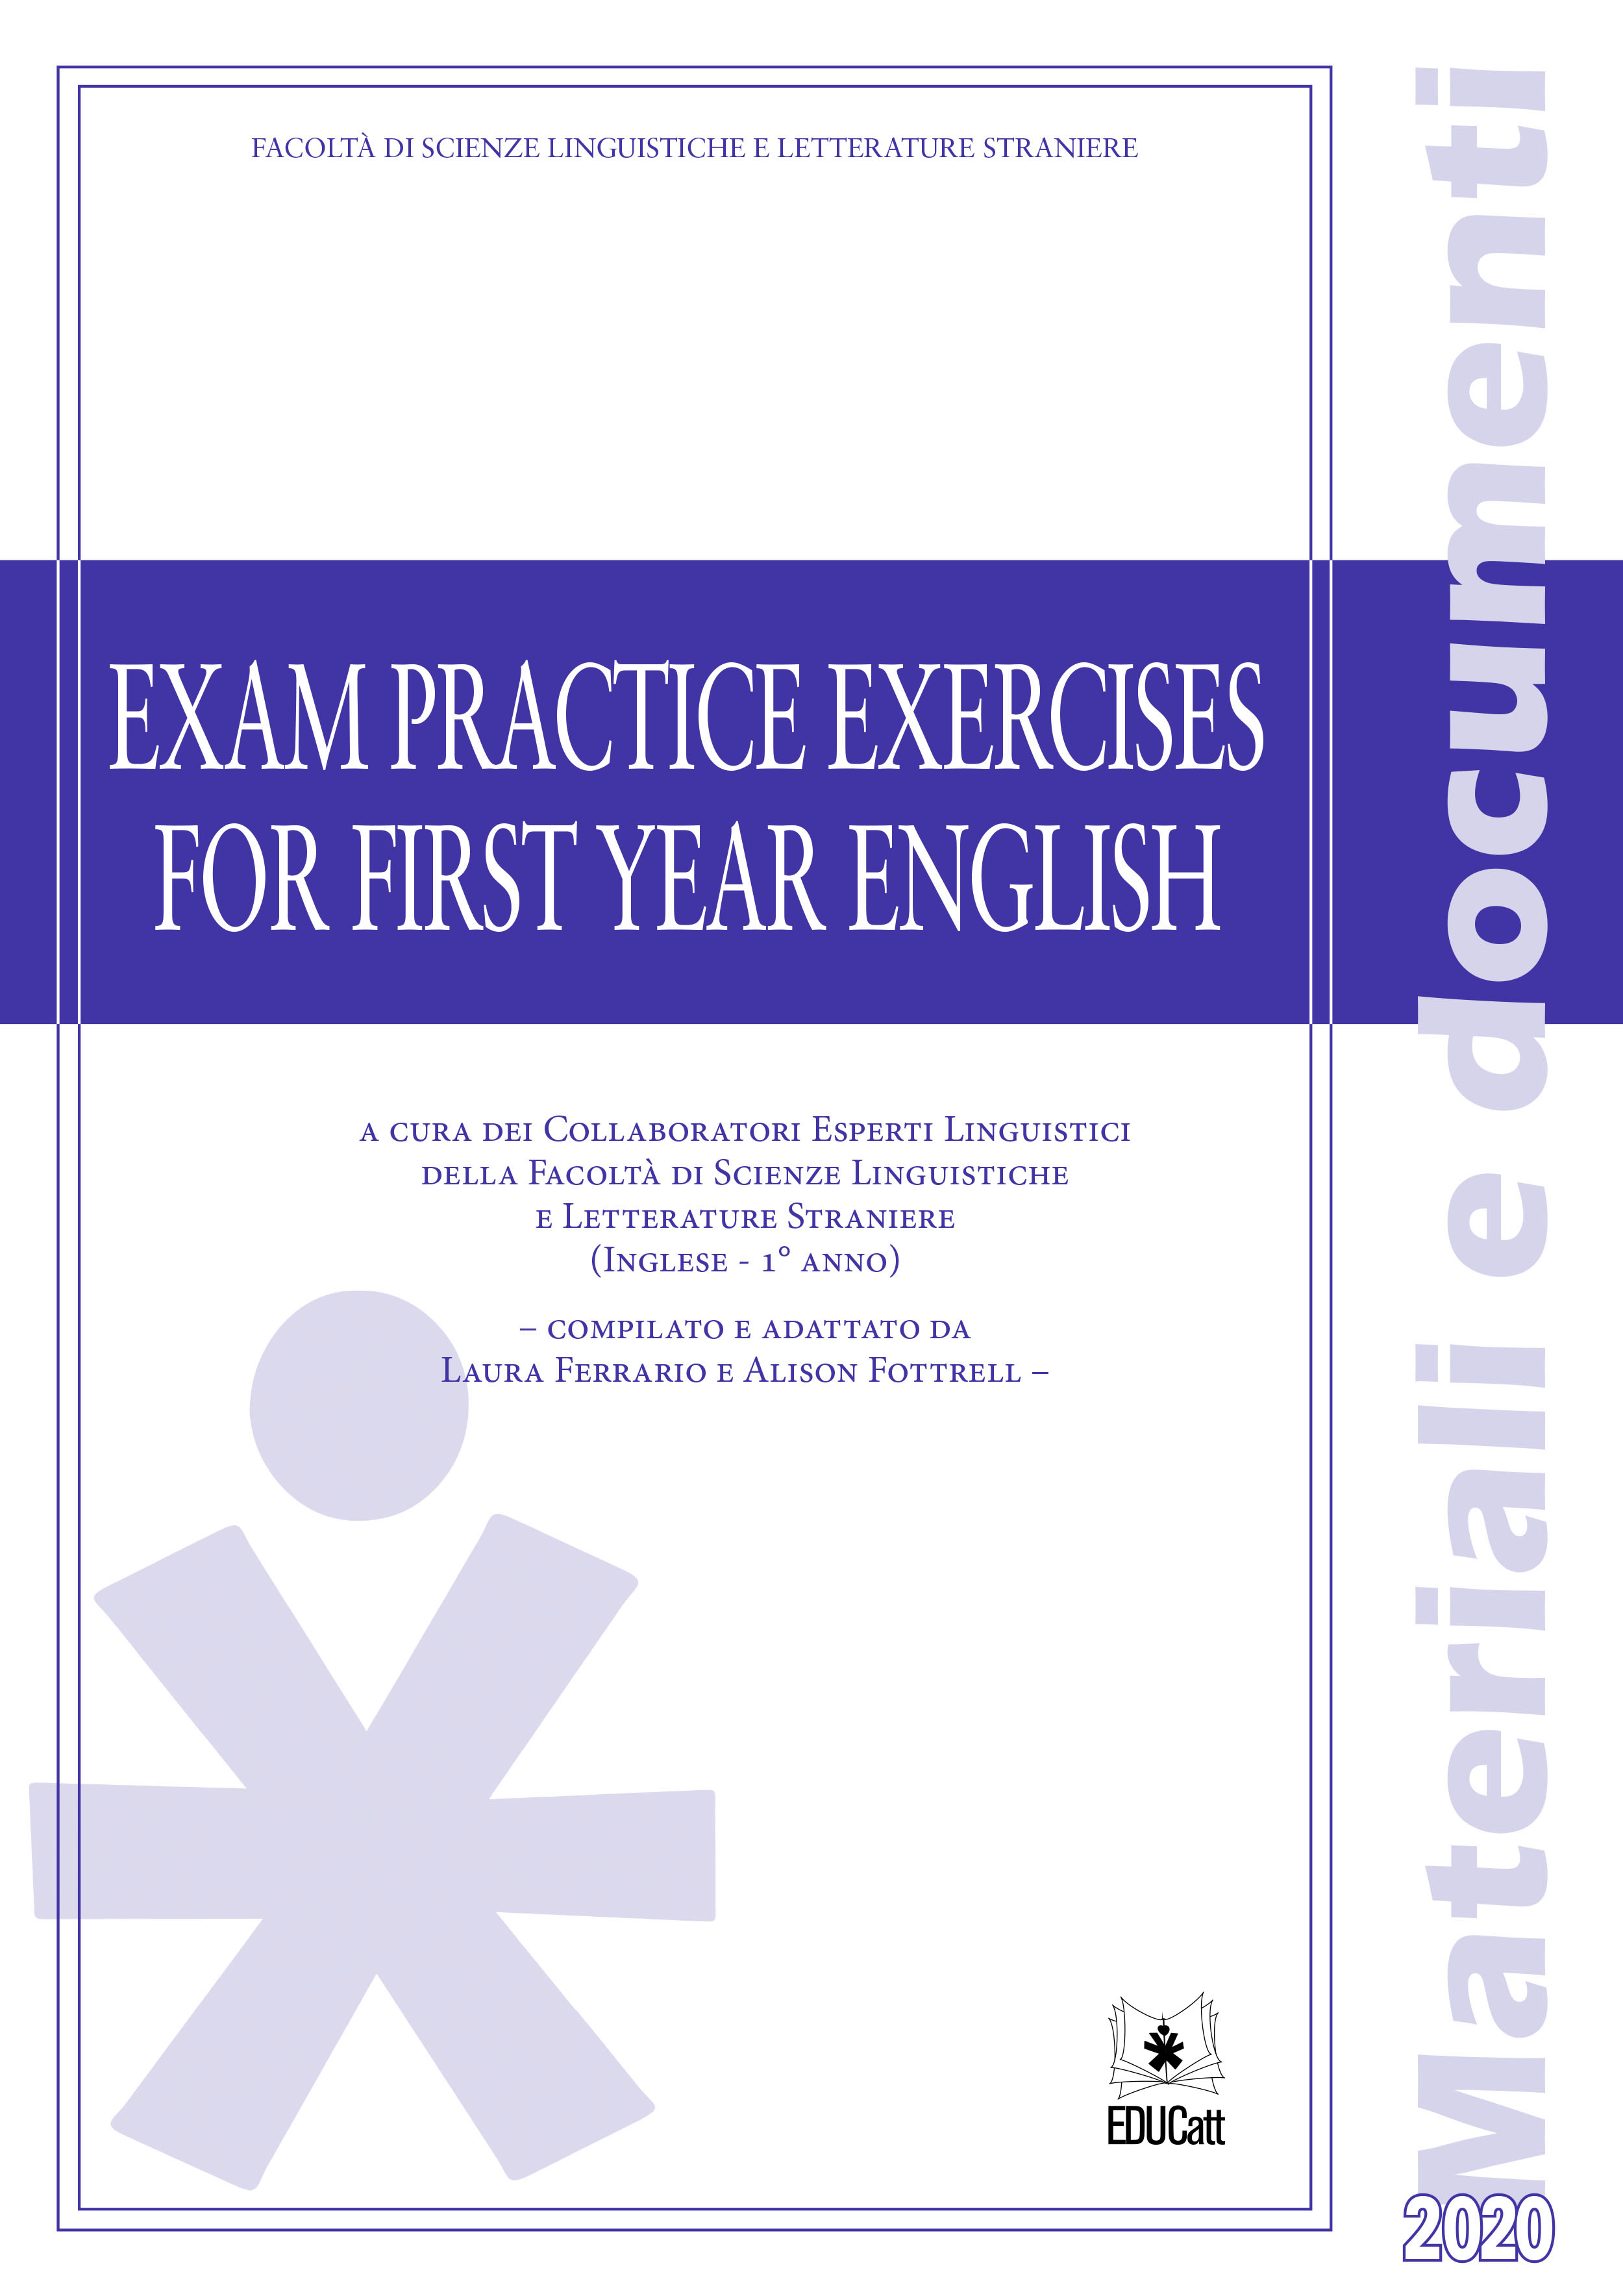 EXAM PRACTICE EXERCISES FOR FIRST YEAR ENGLISH 2020